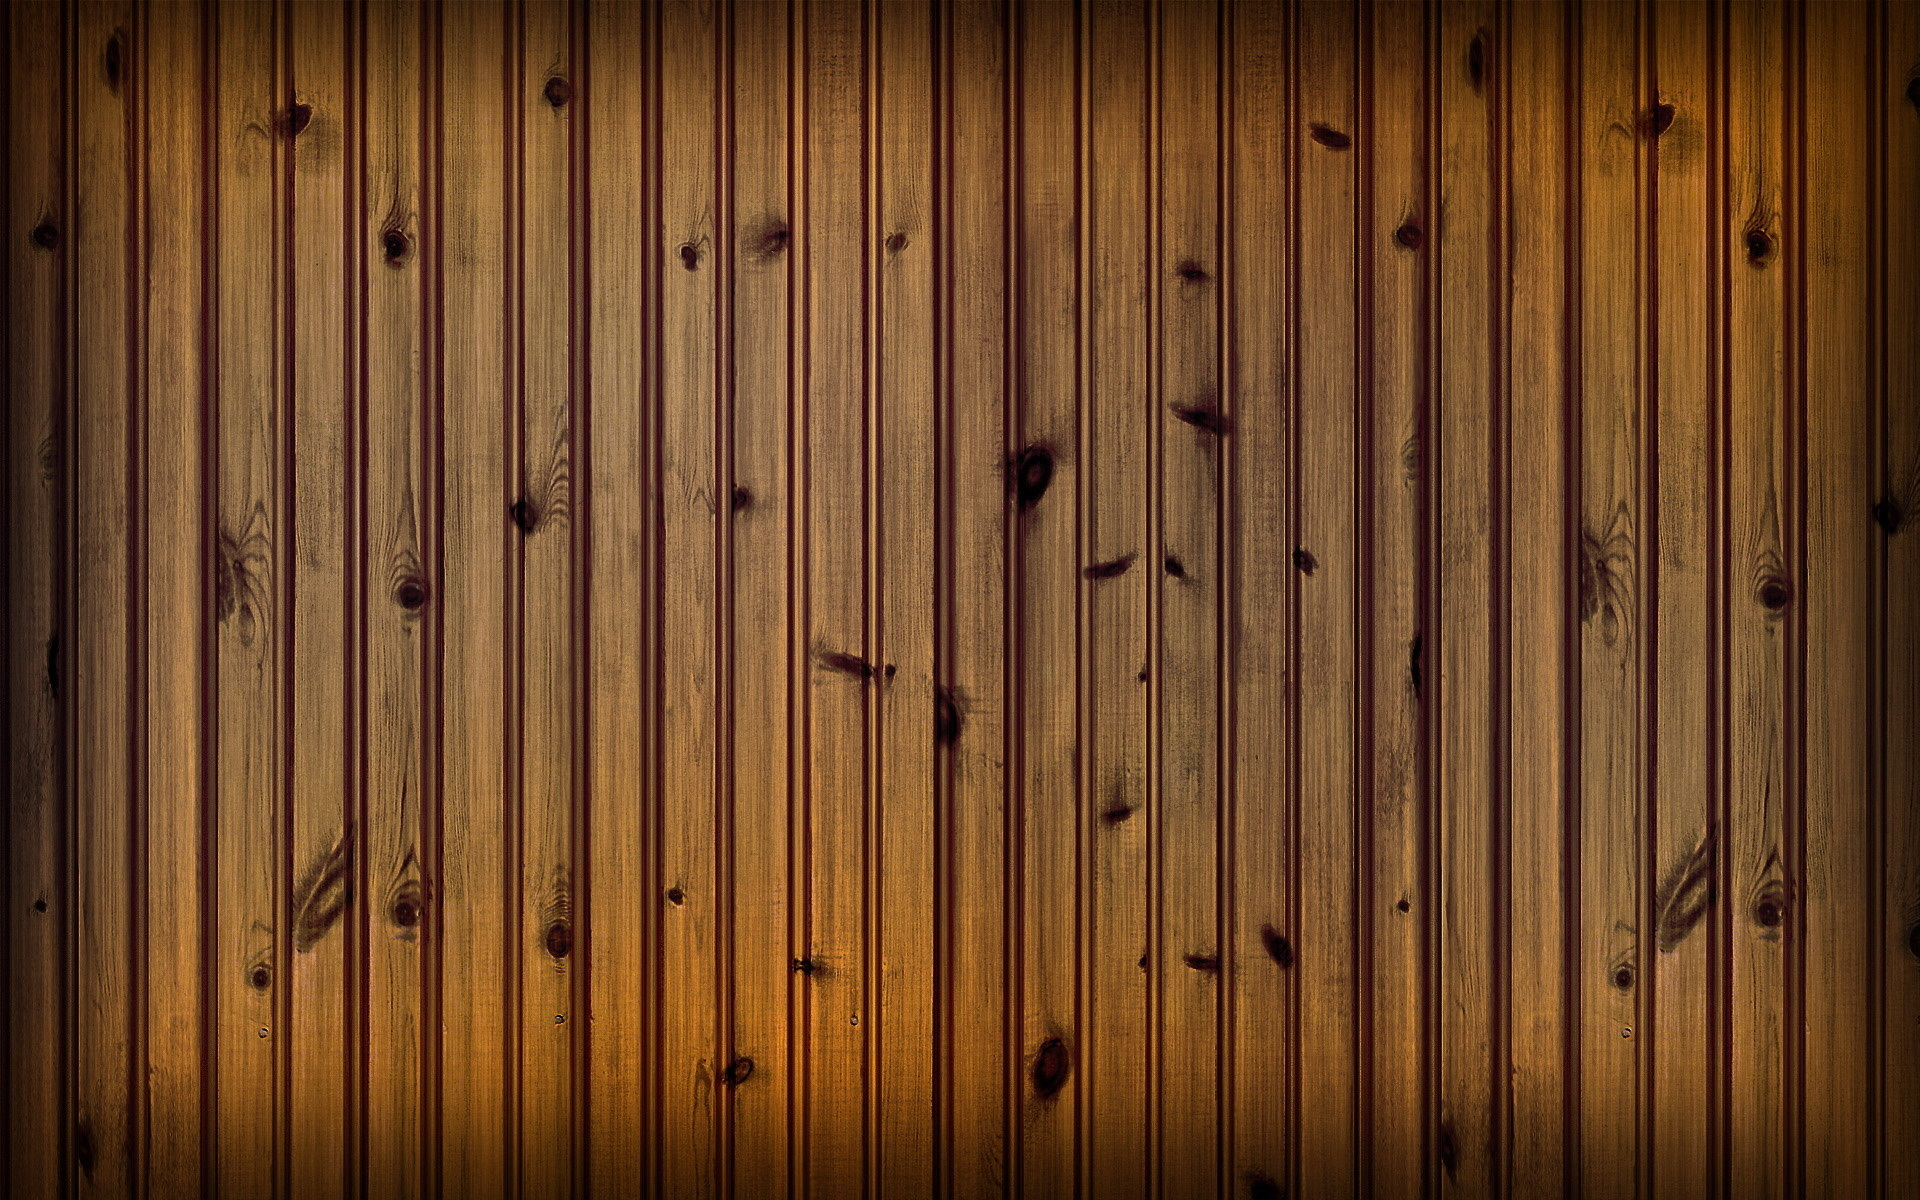 Holz full hd wallpaper and hintergrund 1920x1200 id 347851 - Wallpaper holz ...